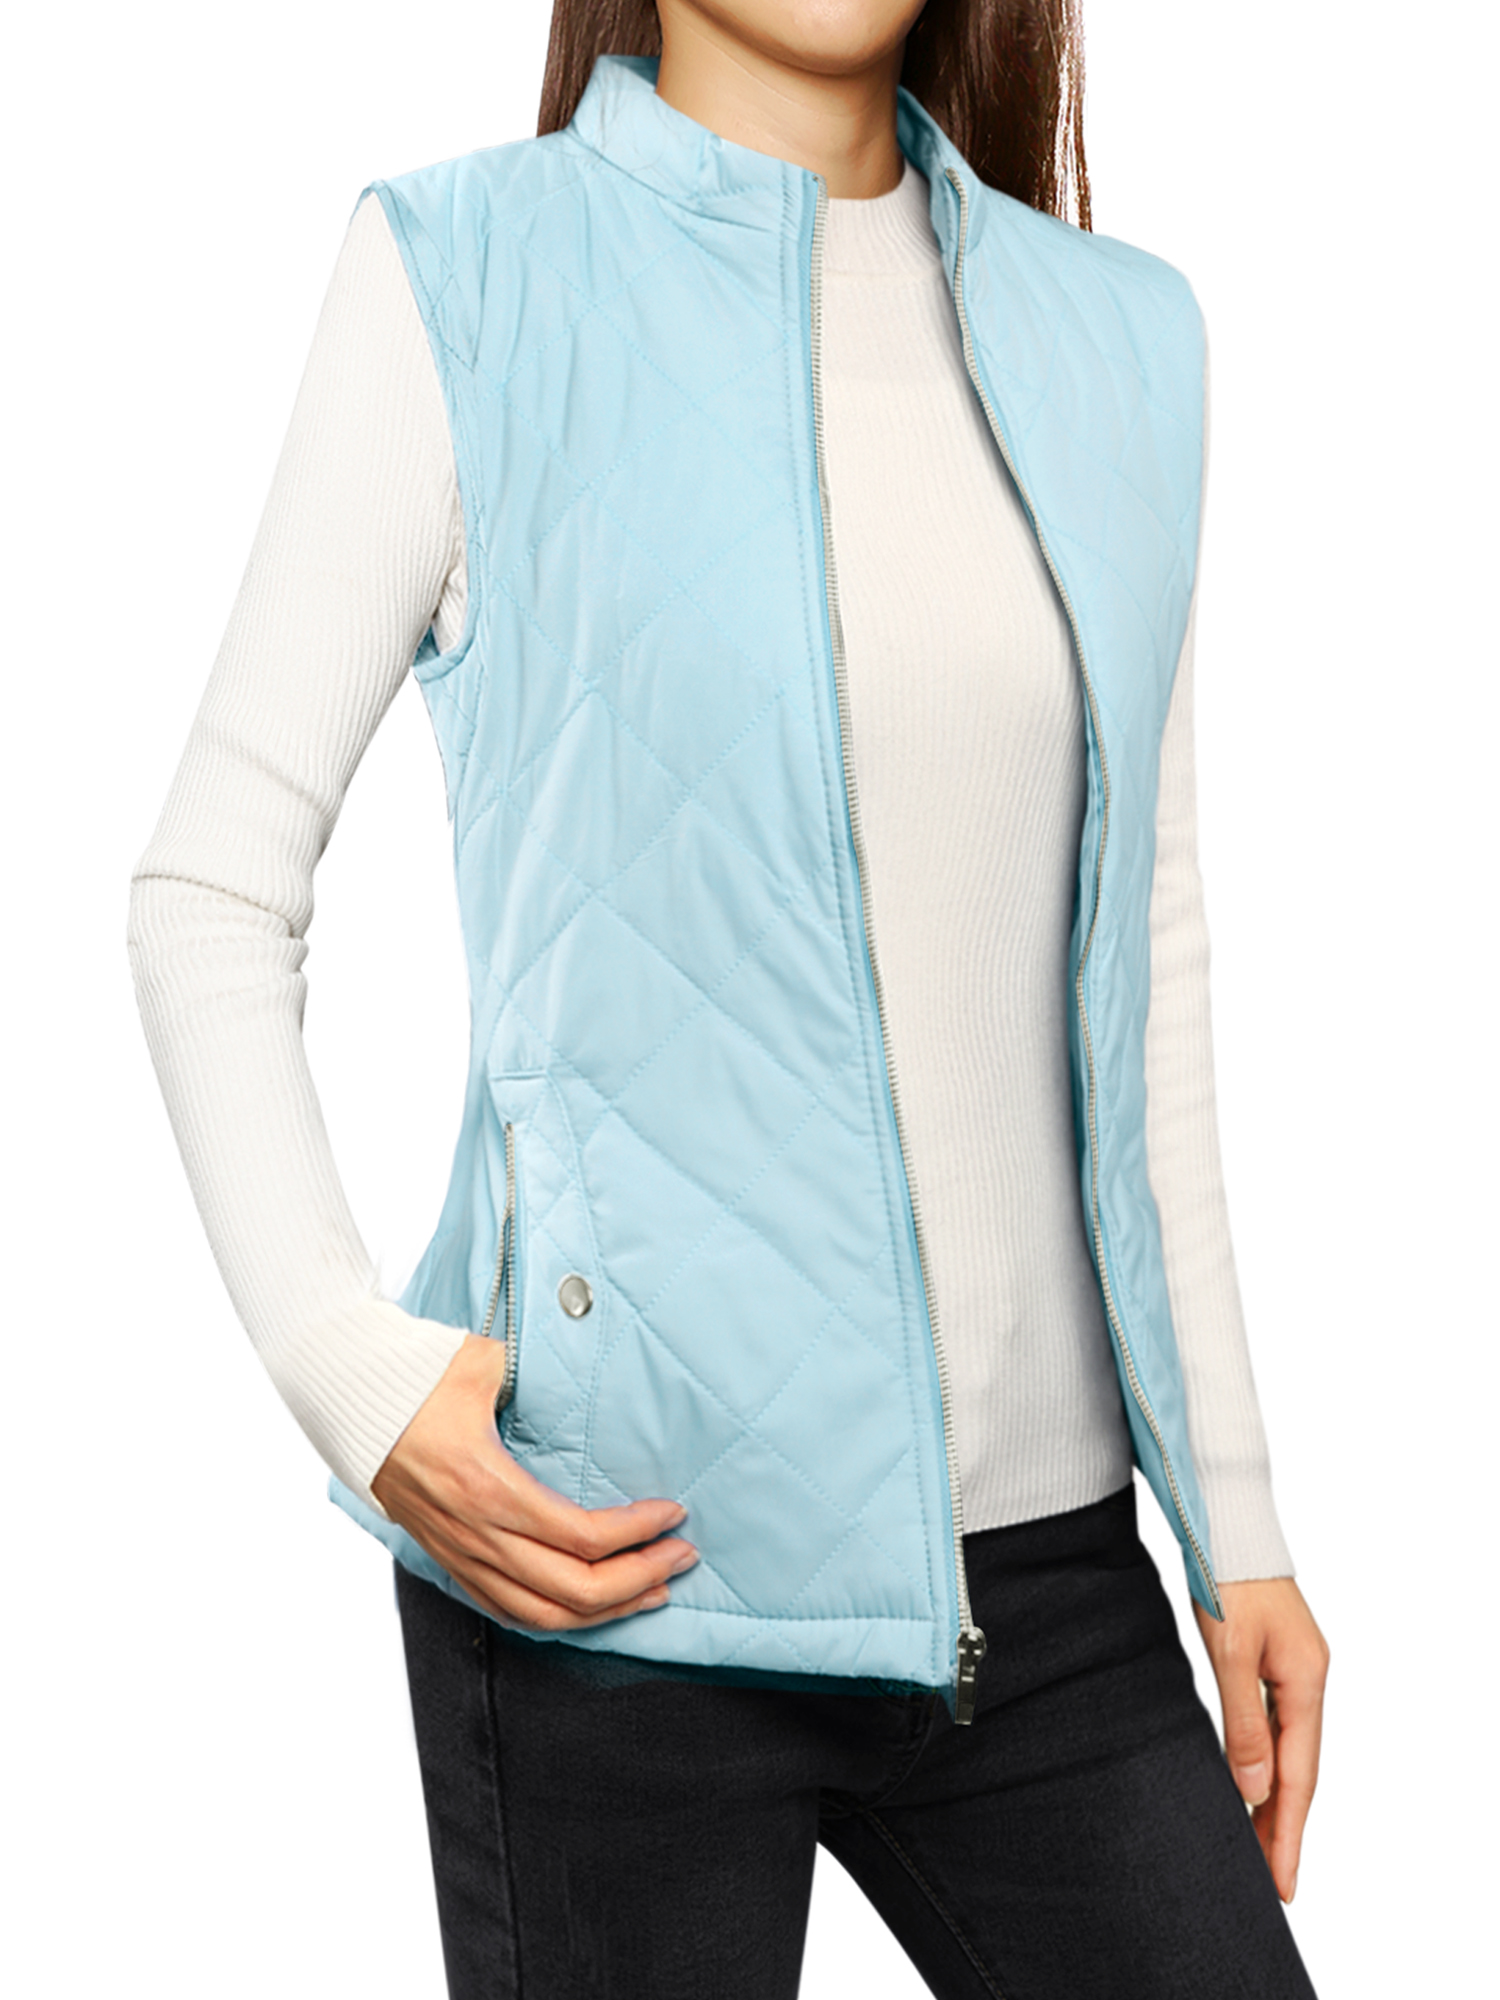 Allegra K Woman Zip Up Front Pockets Quilted Padded Vest Blue XS (US 2)